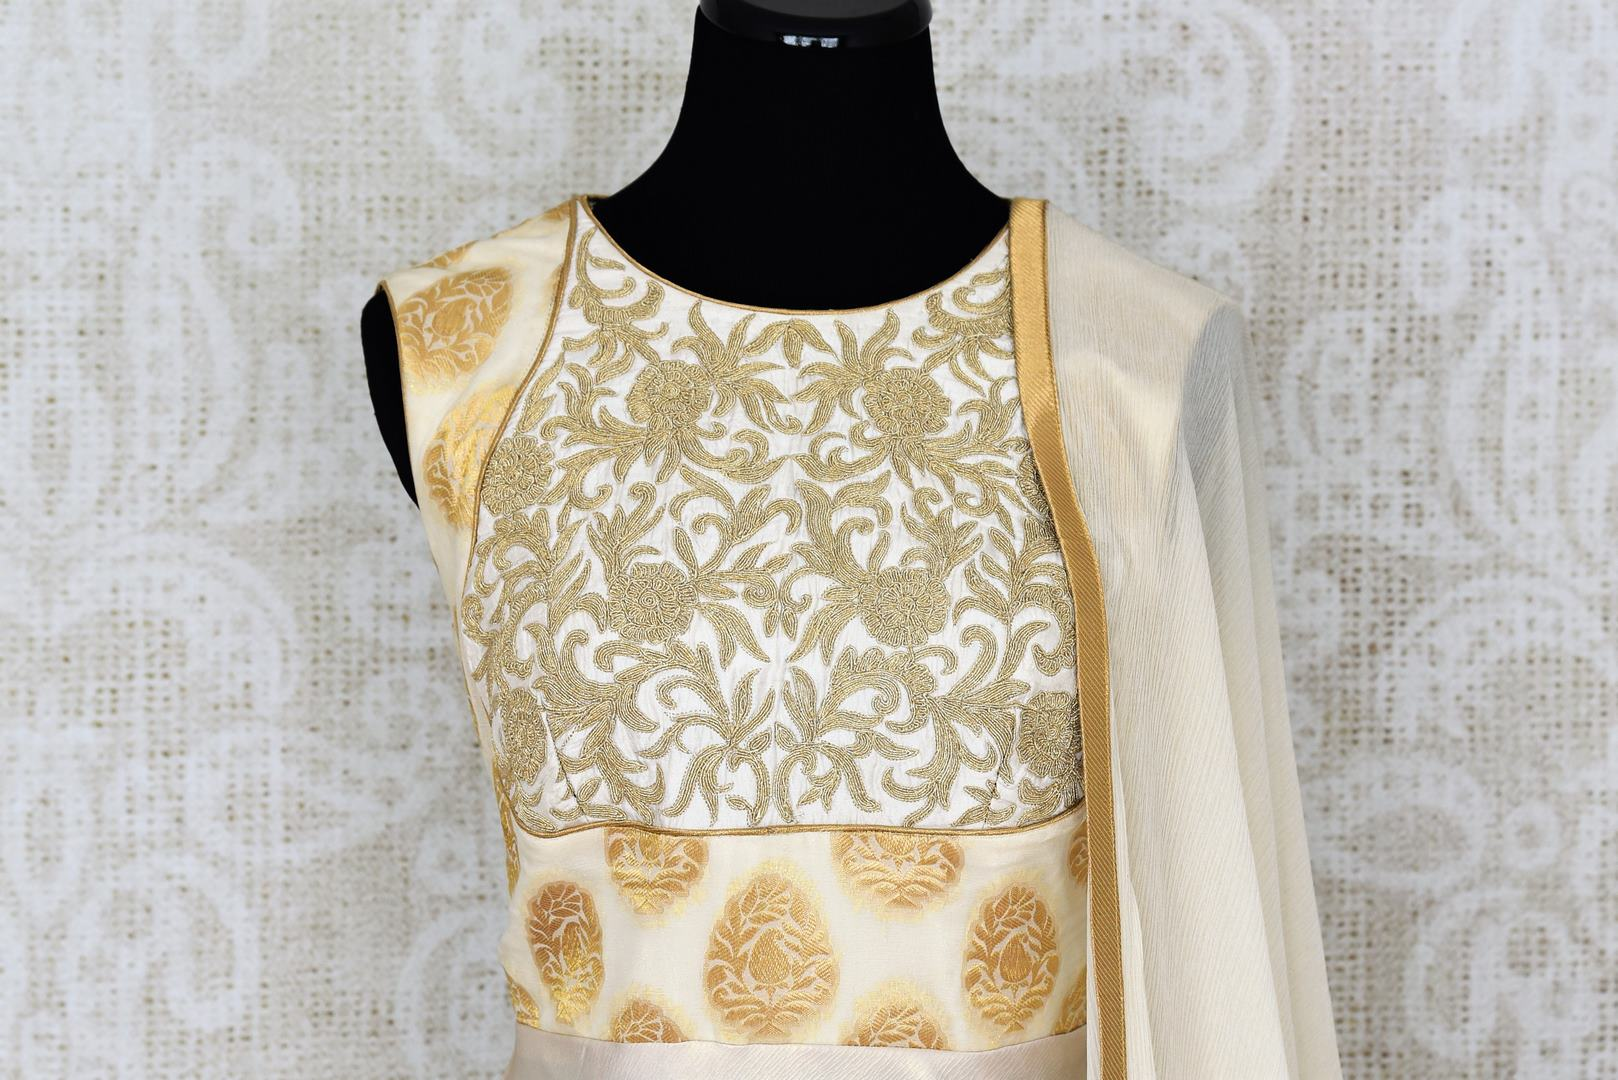 Buy classy off-white embroidered Banarasi silk suit with dupatta online in USA. Add brilliance to your Indian look with an exquisite range of designer dresses, Anarkali suits available at Pure Elegance exclusive clothing store in USA or shop online.-top front